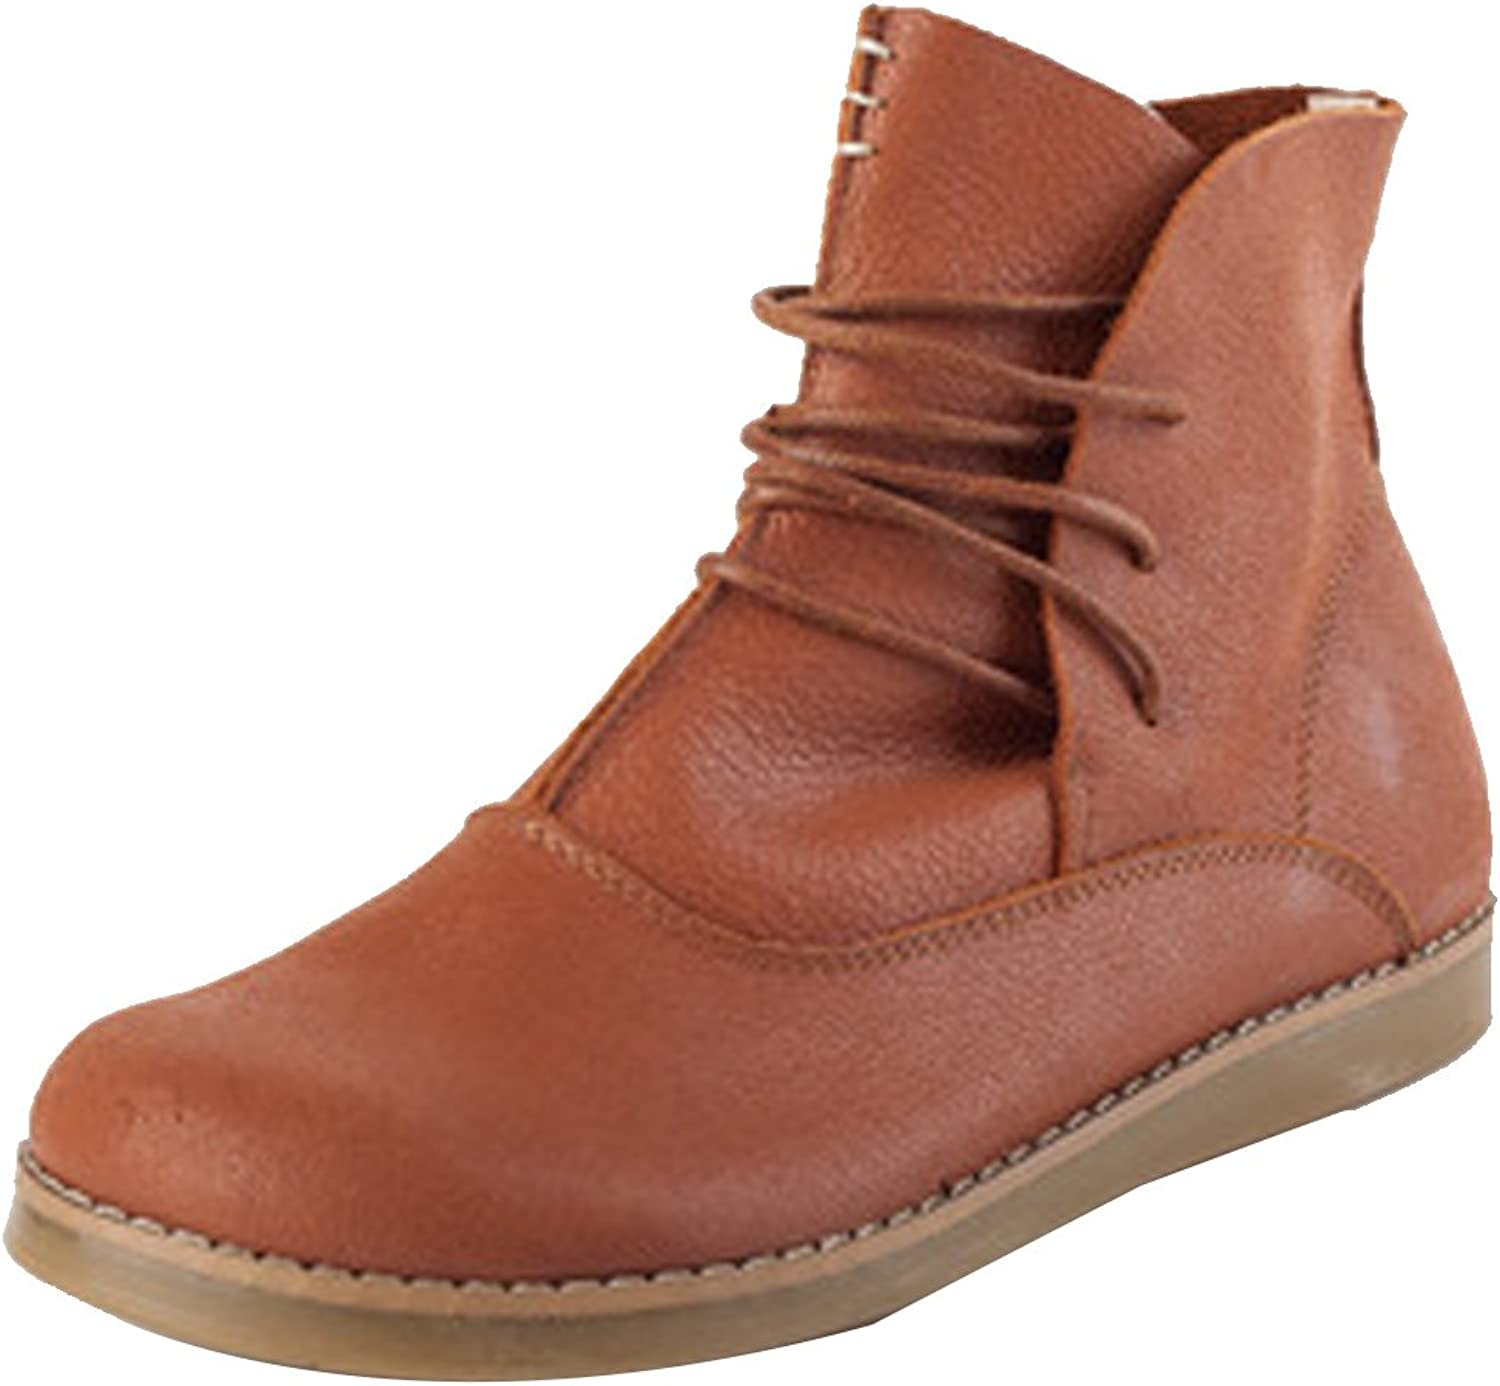 Zoulee Women's Round Toe Lace Up Letter Boots Ankle Boots